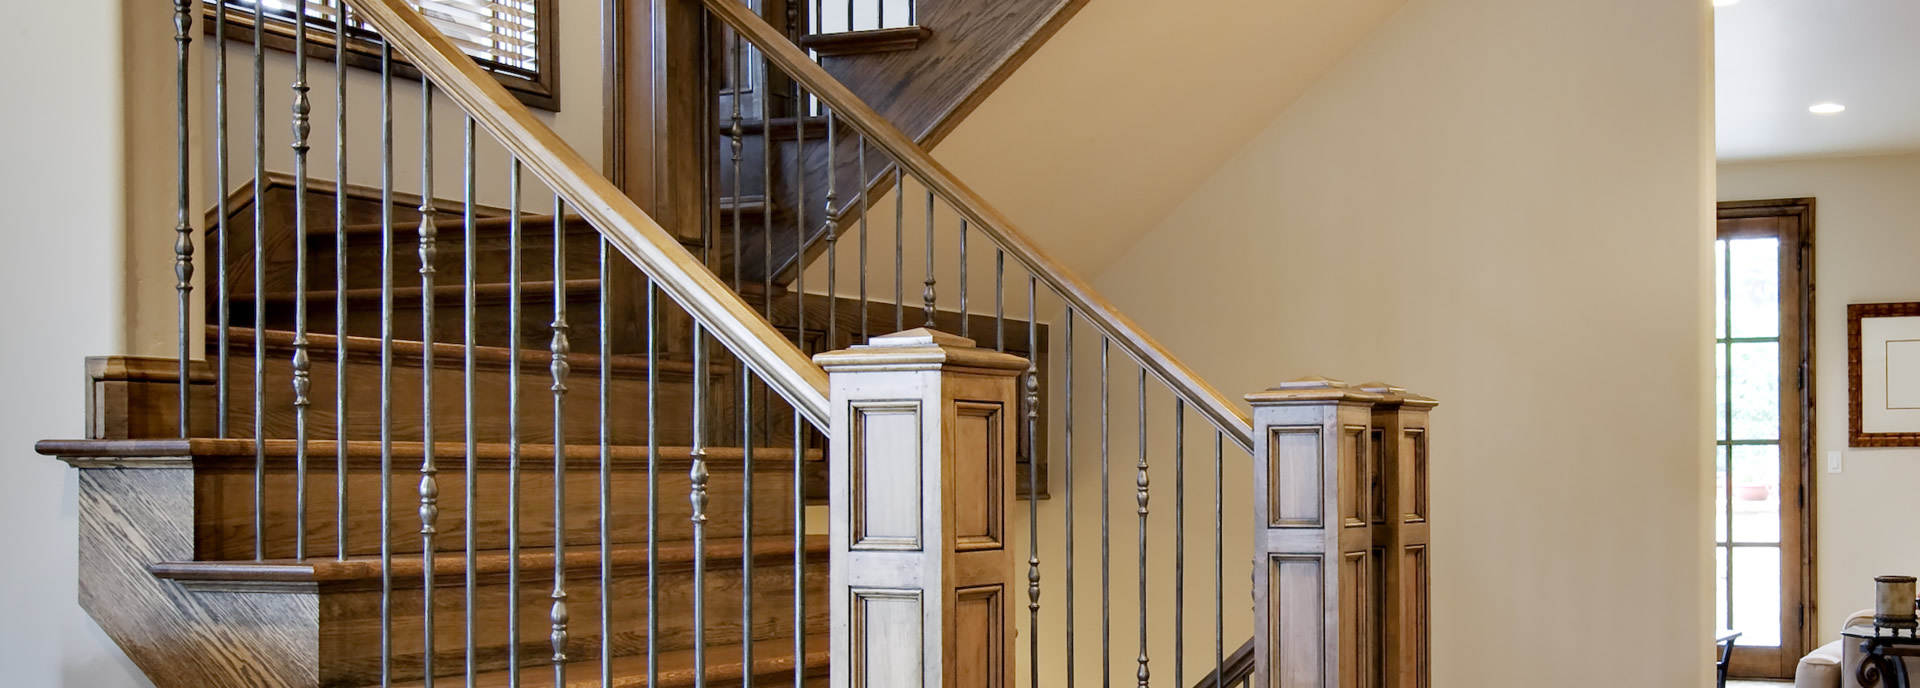 Production Stairs with Wrought Iron Balusters Atlanta GA